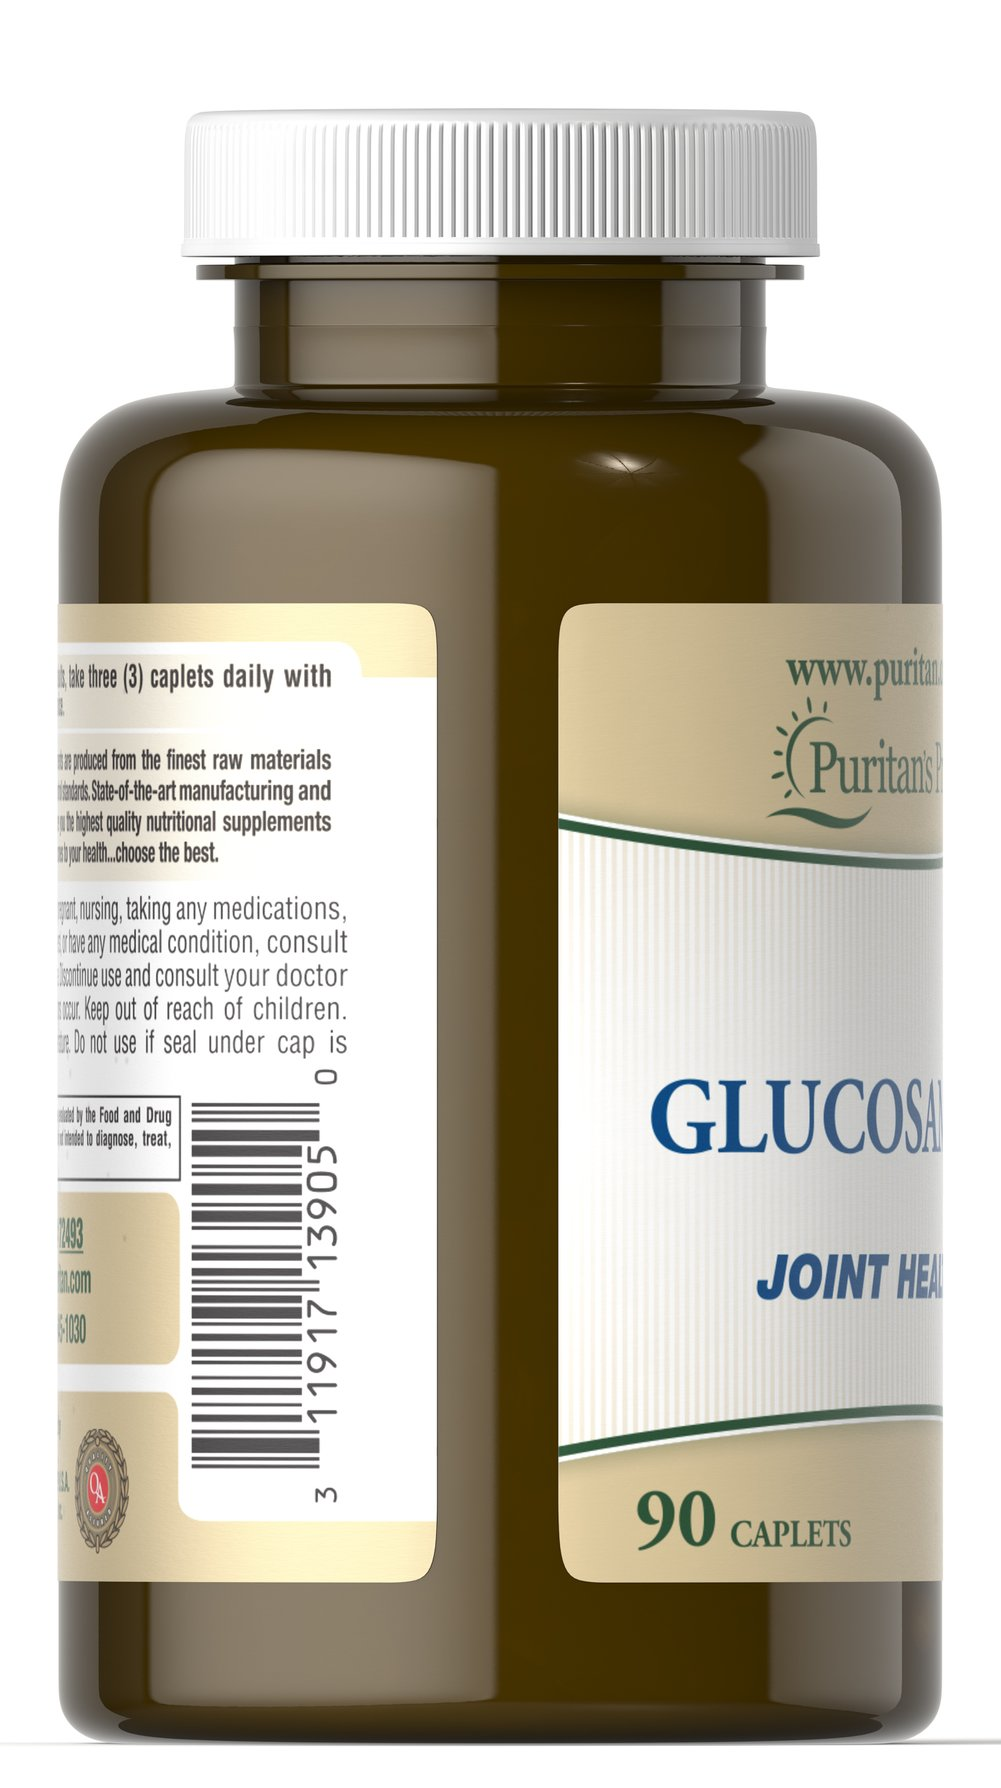 Glucosamine Thumbnail Alternate Bottle View